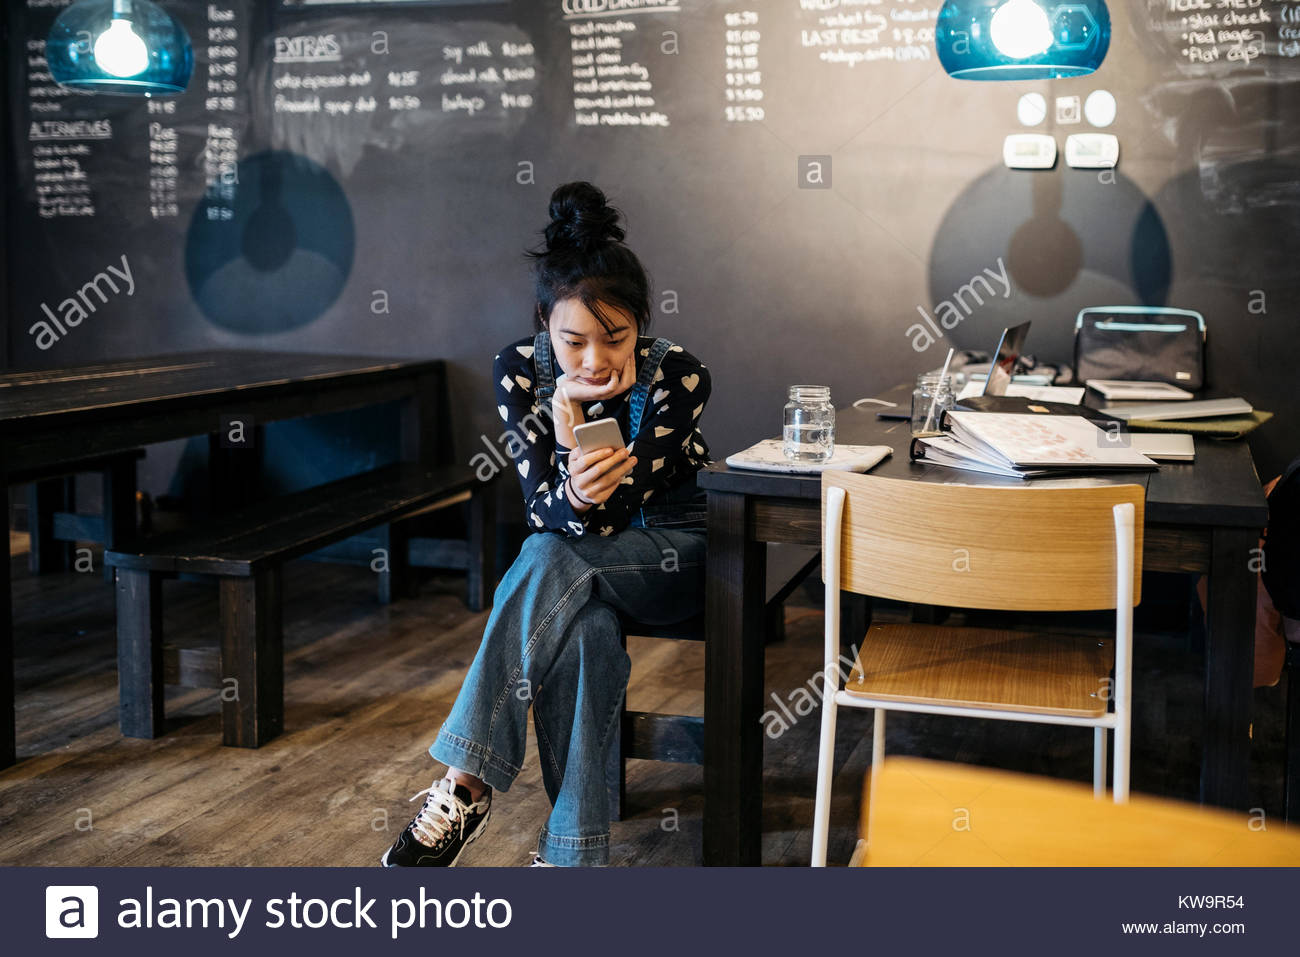 Asian tween girl texting with smart phone at cafe table - Stock Image